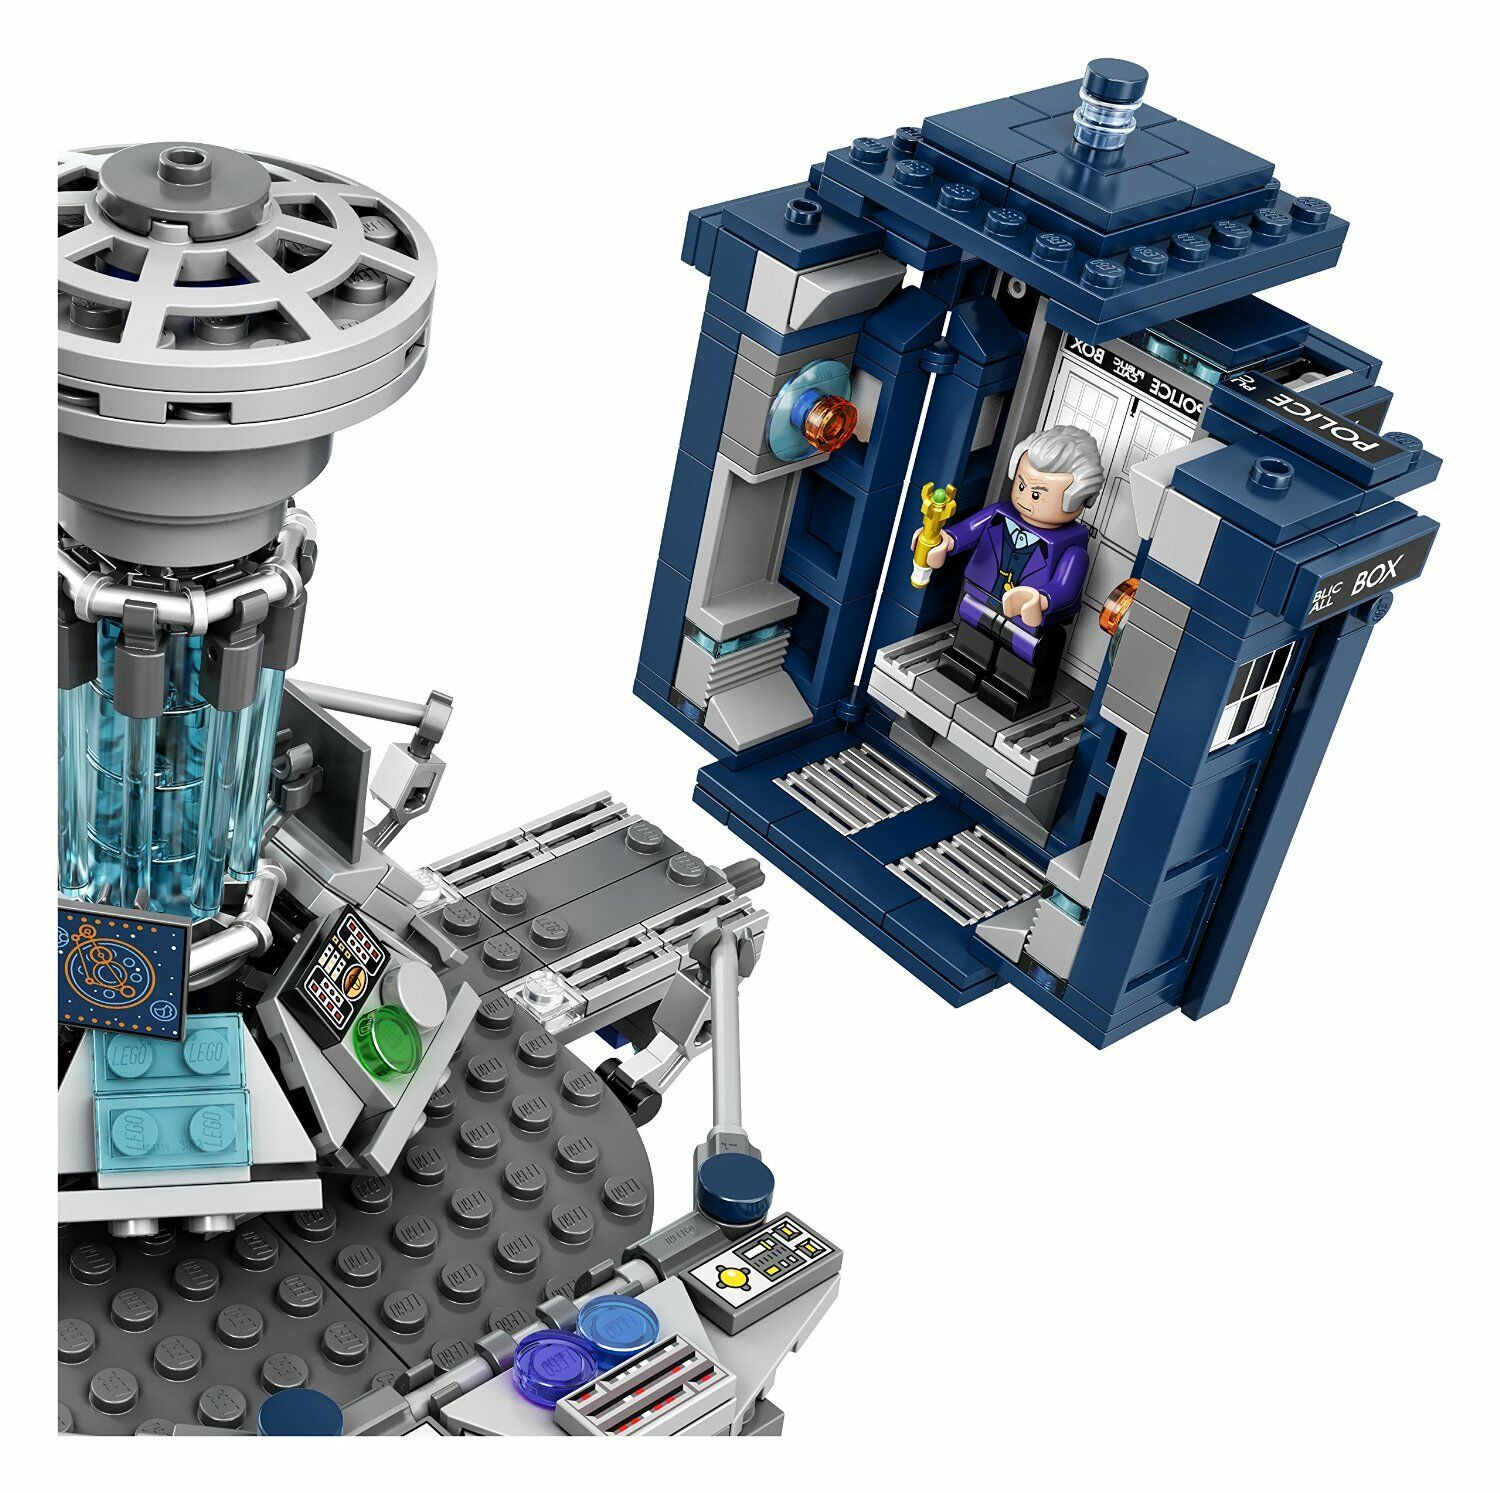 NEW NEW NEW LEGO Ideas Doctor Who 21304 Building Kit 9e2dc1